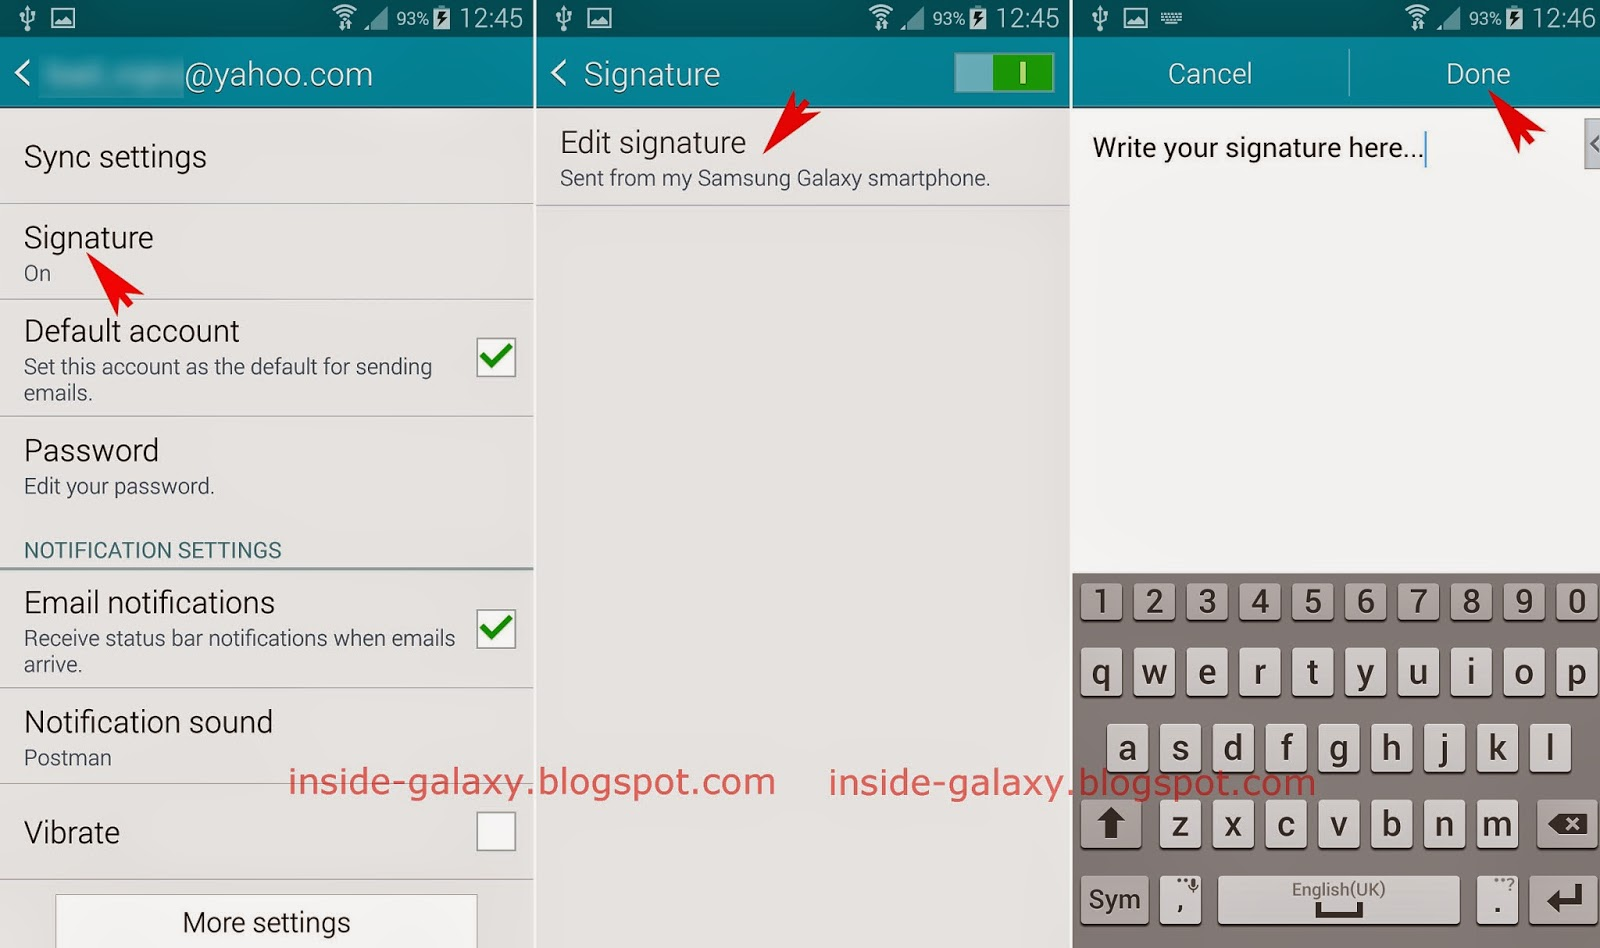 Samsung Galaxy S5: How to Change Signature in the Stock Email App in